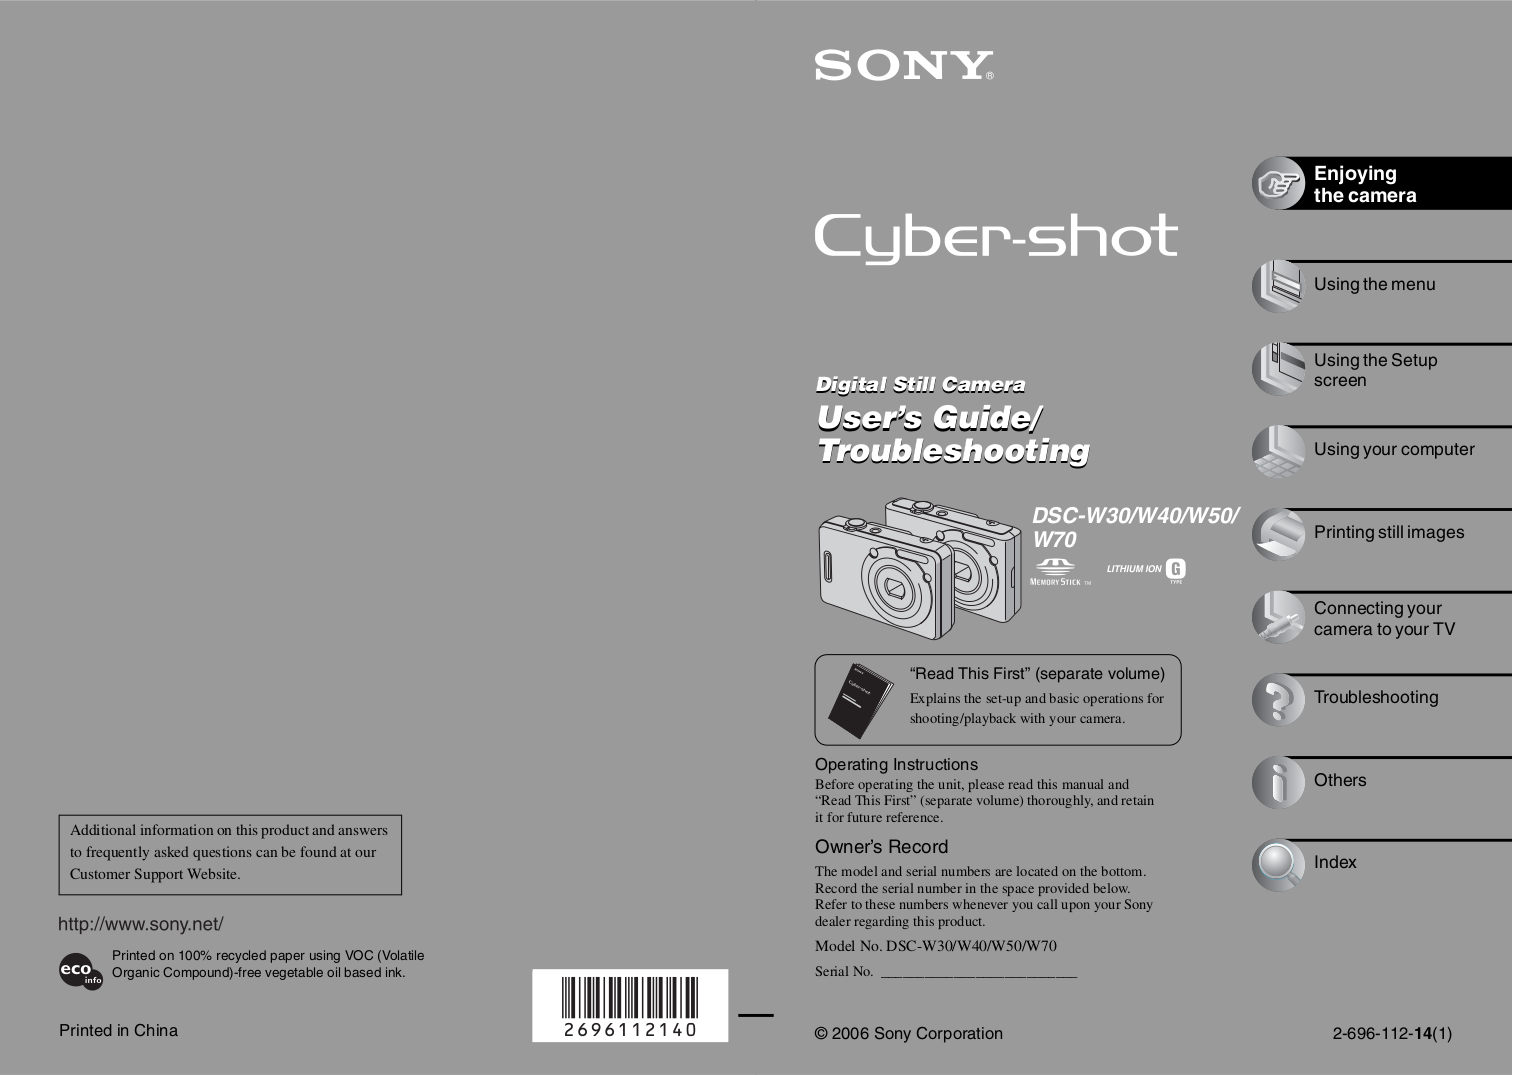 download free pdf for sony cybershot cyber shot dsc w50 digital rh umlib com sony cyber shot dsc wx50 user manual pdf sony cyber shot dsc-wx50 manual download